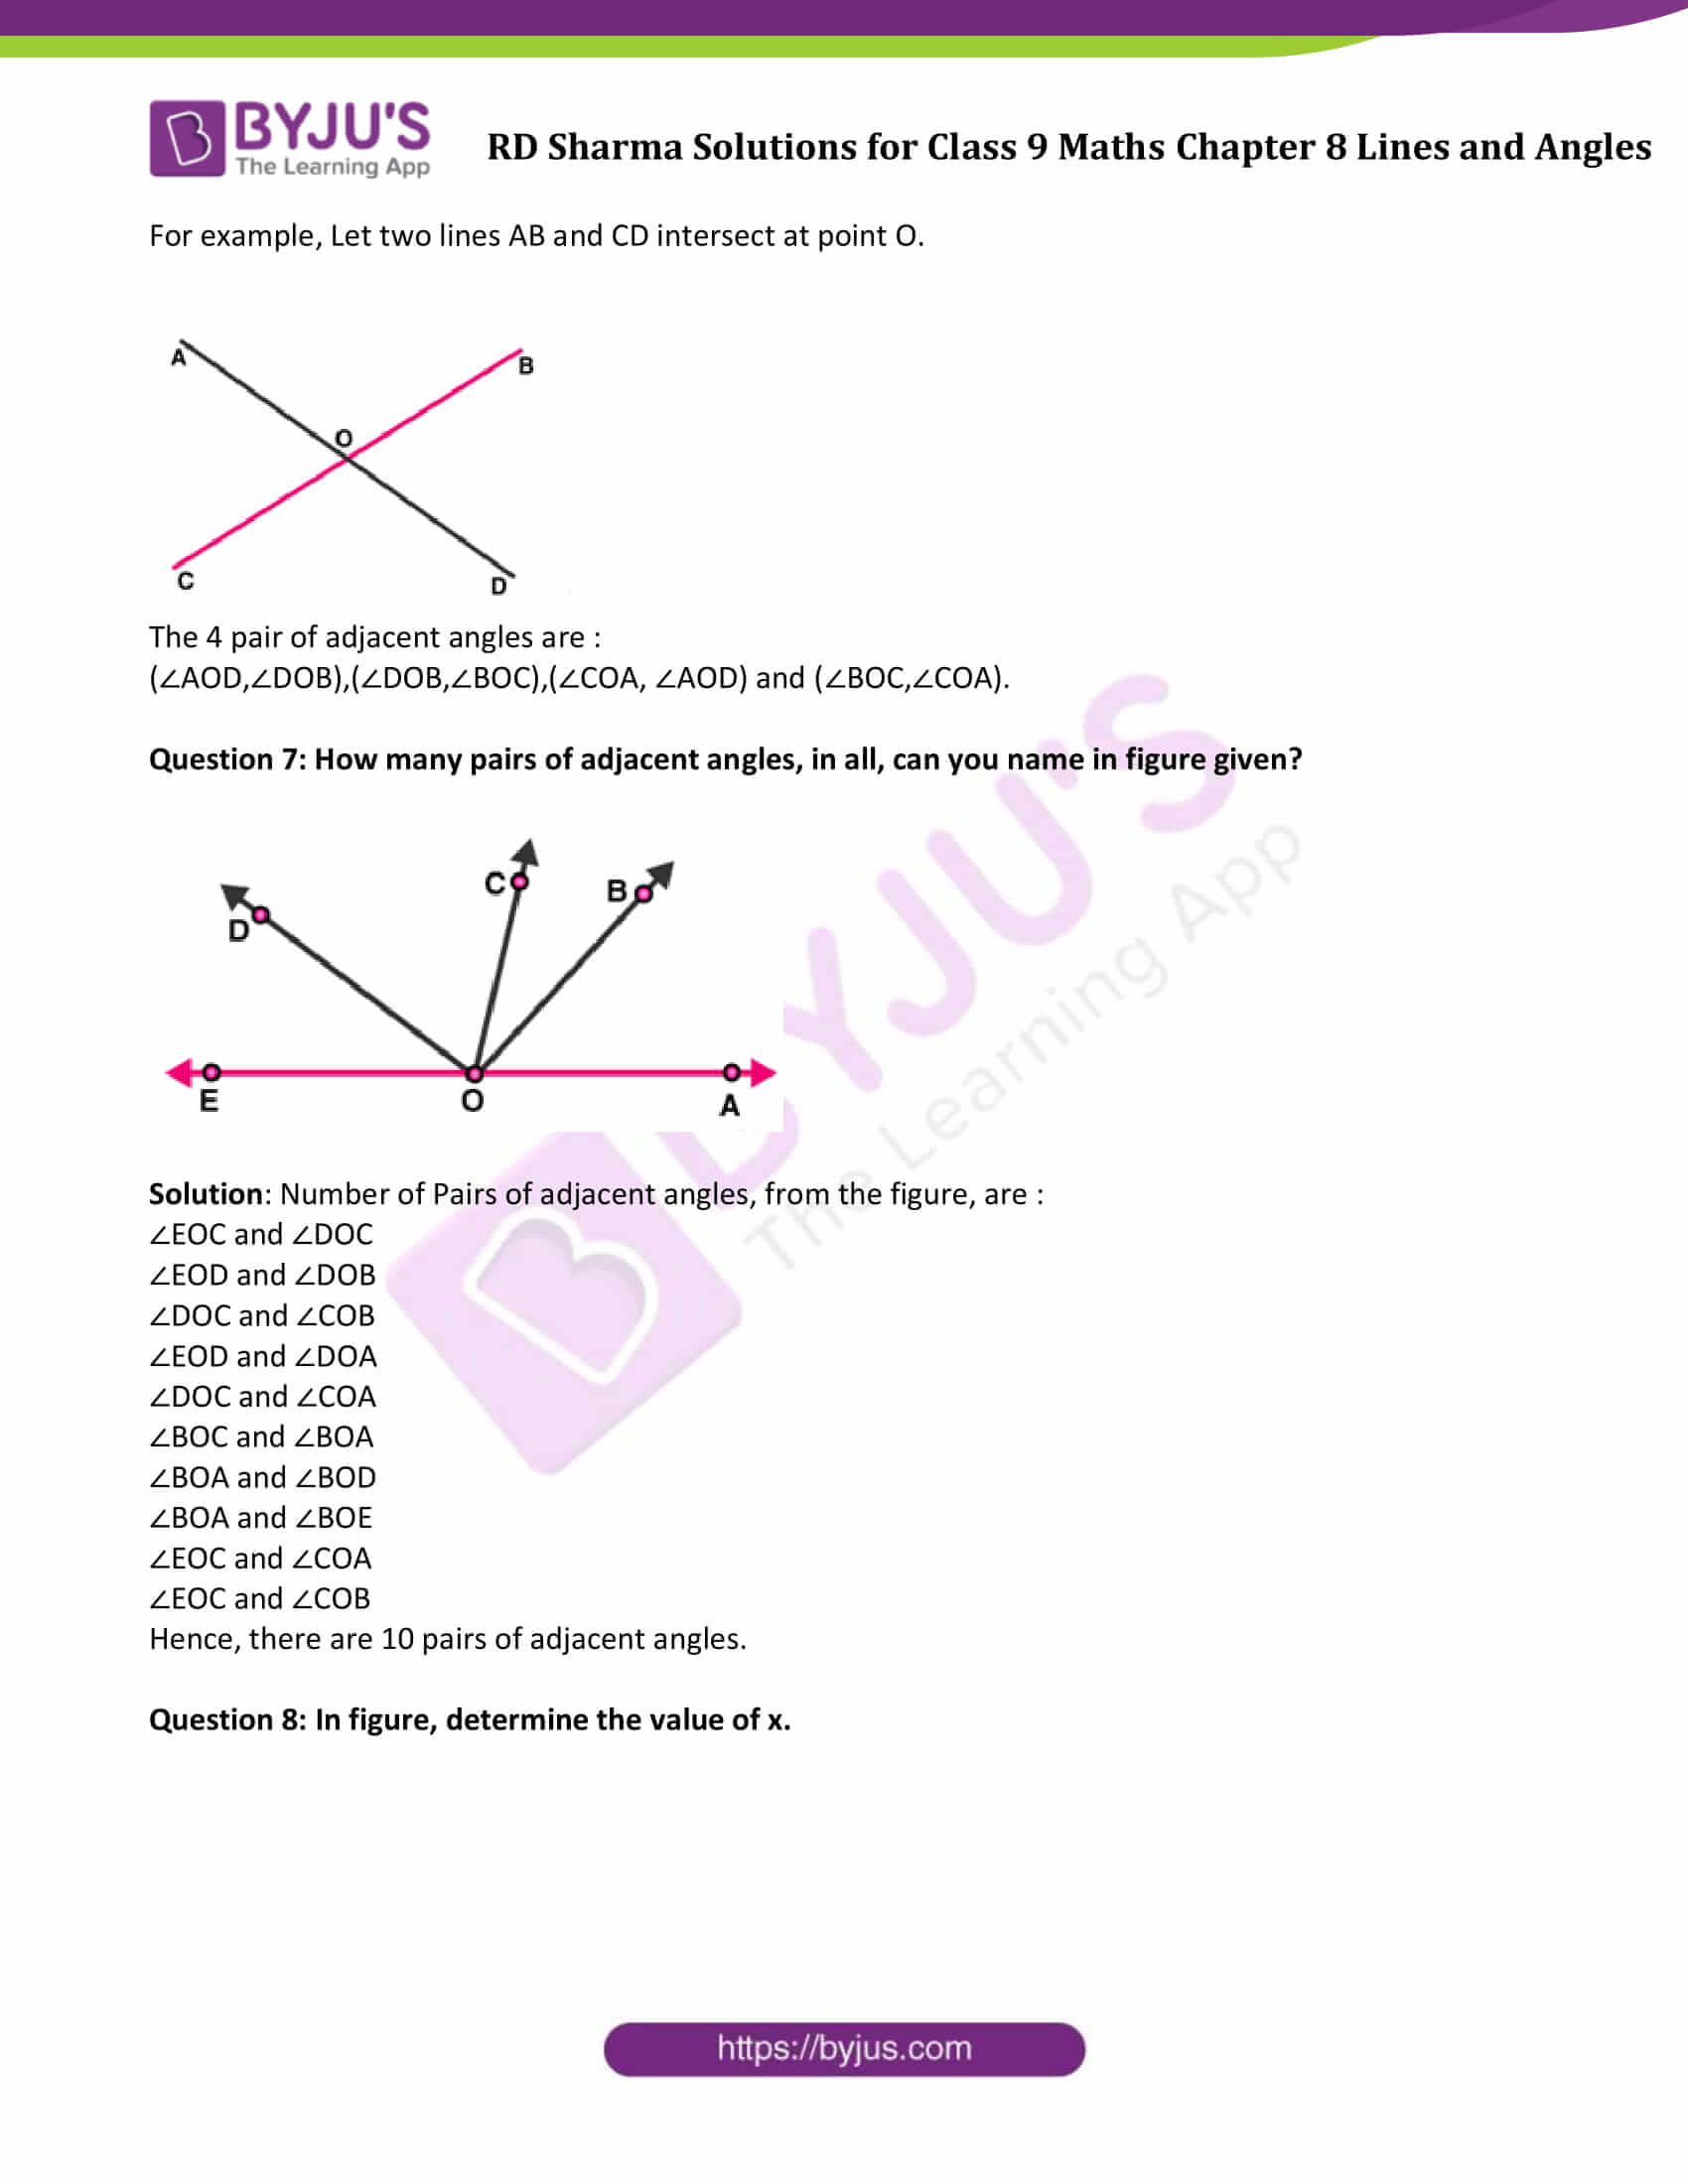 RD Sharma Solution class 9 Maths Chapter 8 Lines and Angles 08